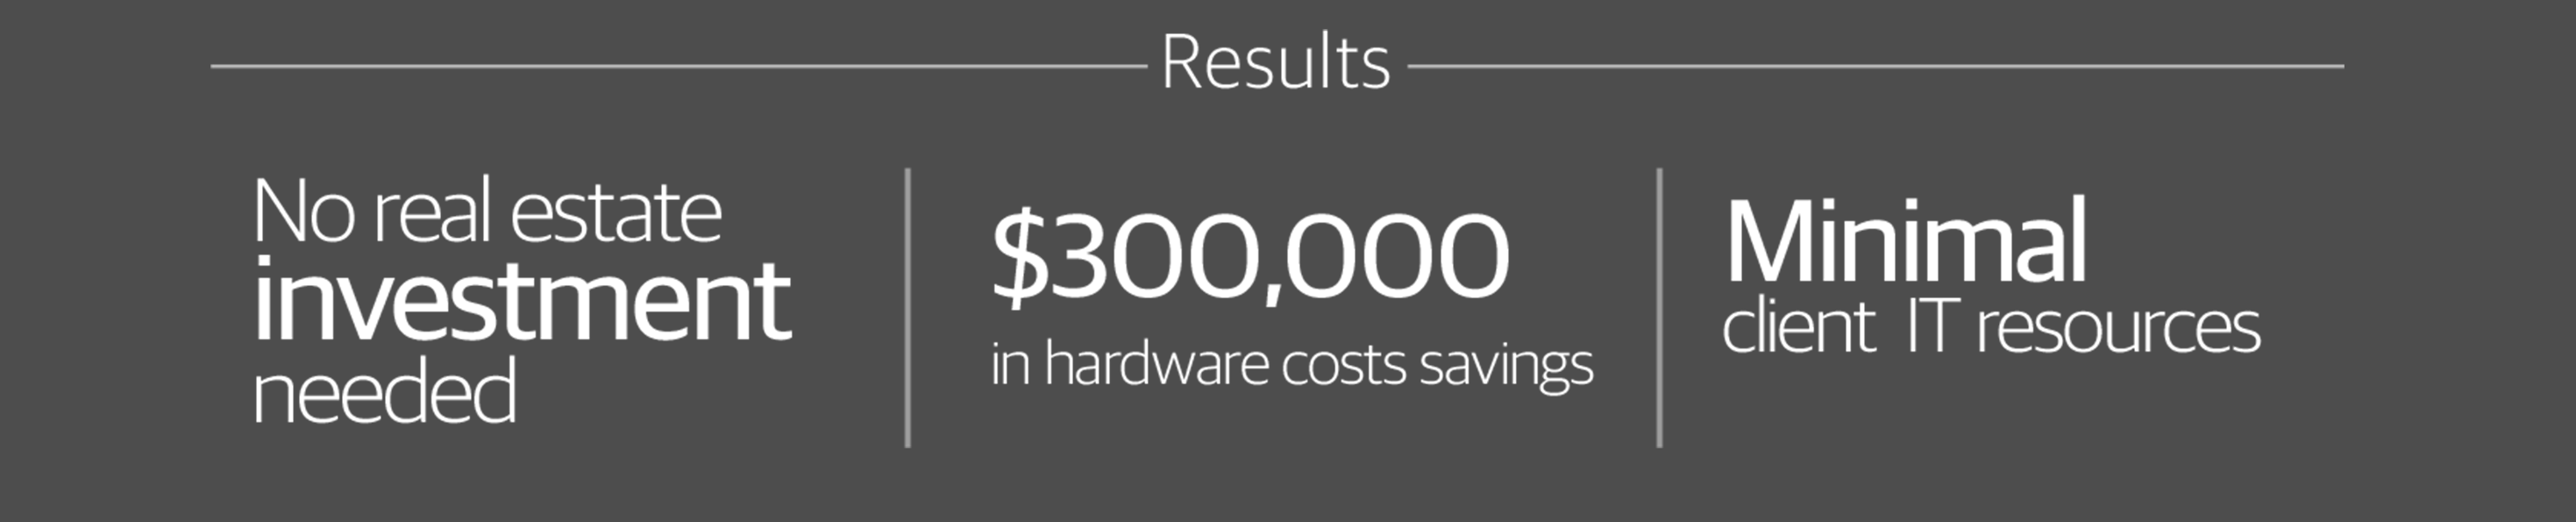 We helped implement our at-home solution to save over $300,000 in operation costs